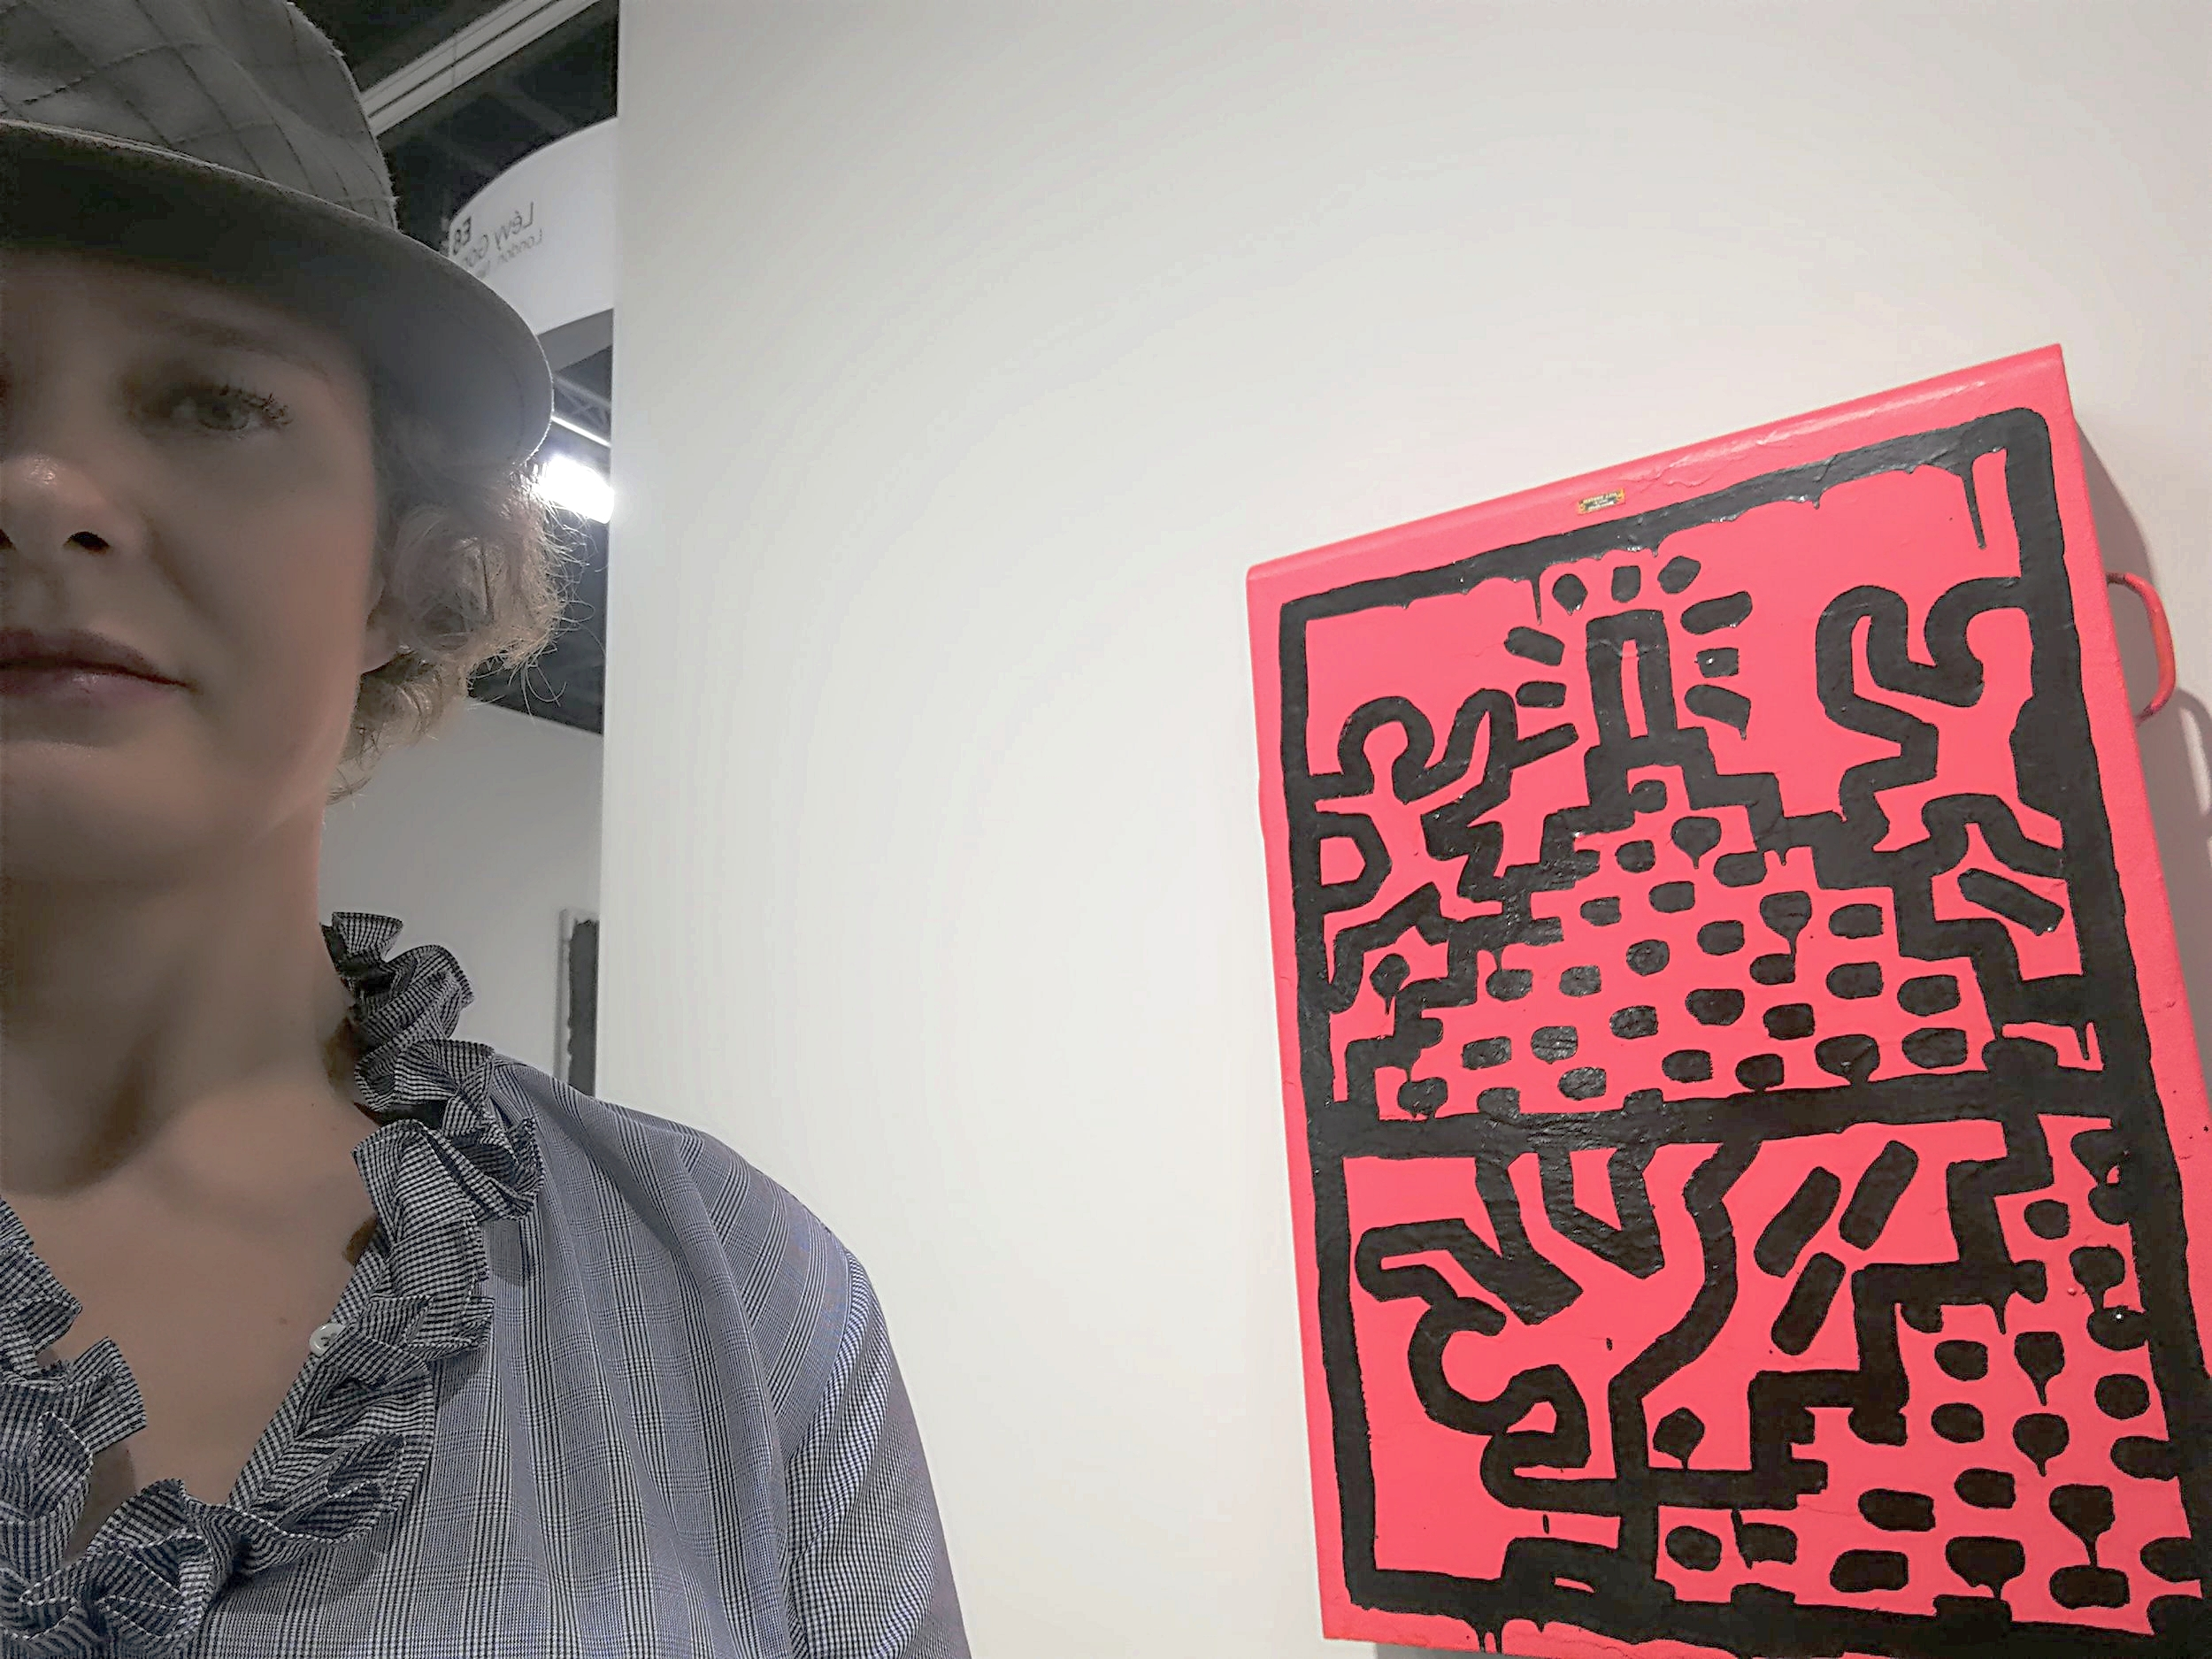 With a Keith Haring as usual! Levy Gorvy gallery at Art Basel